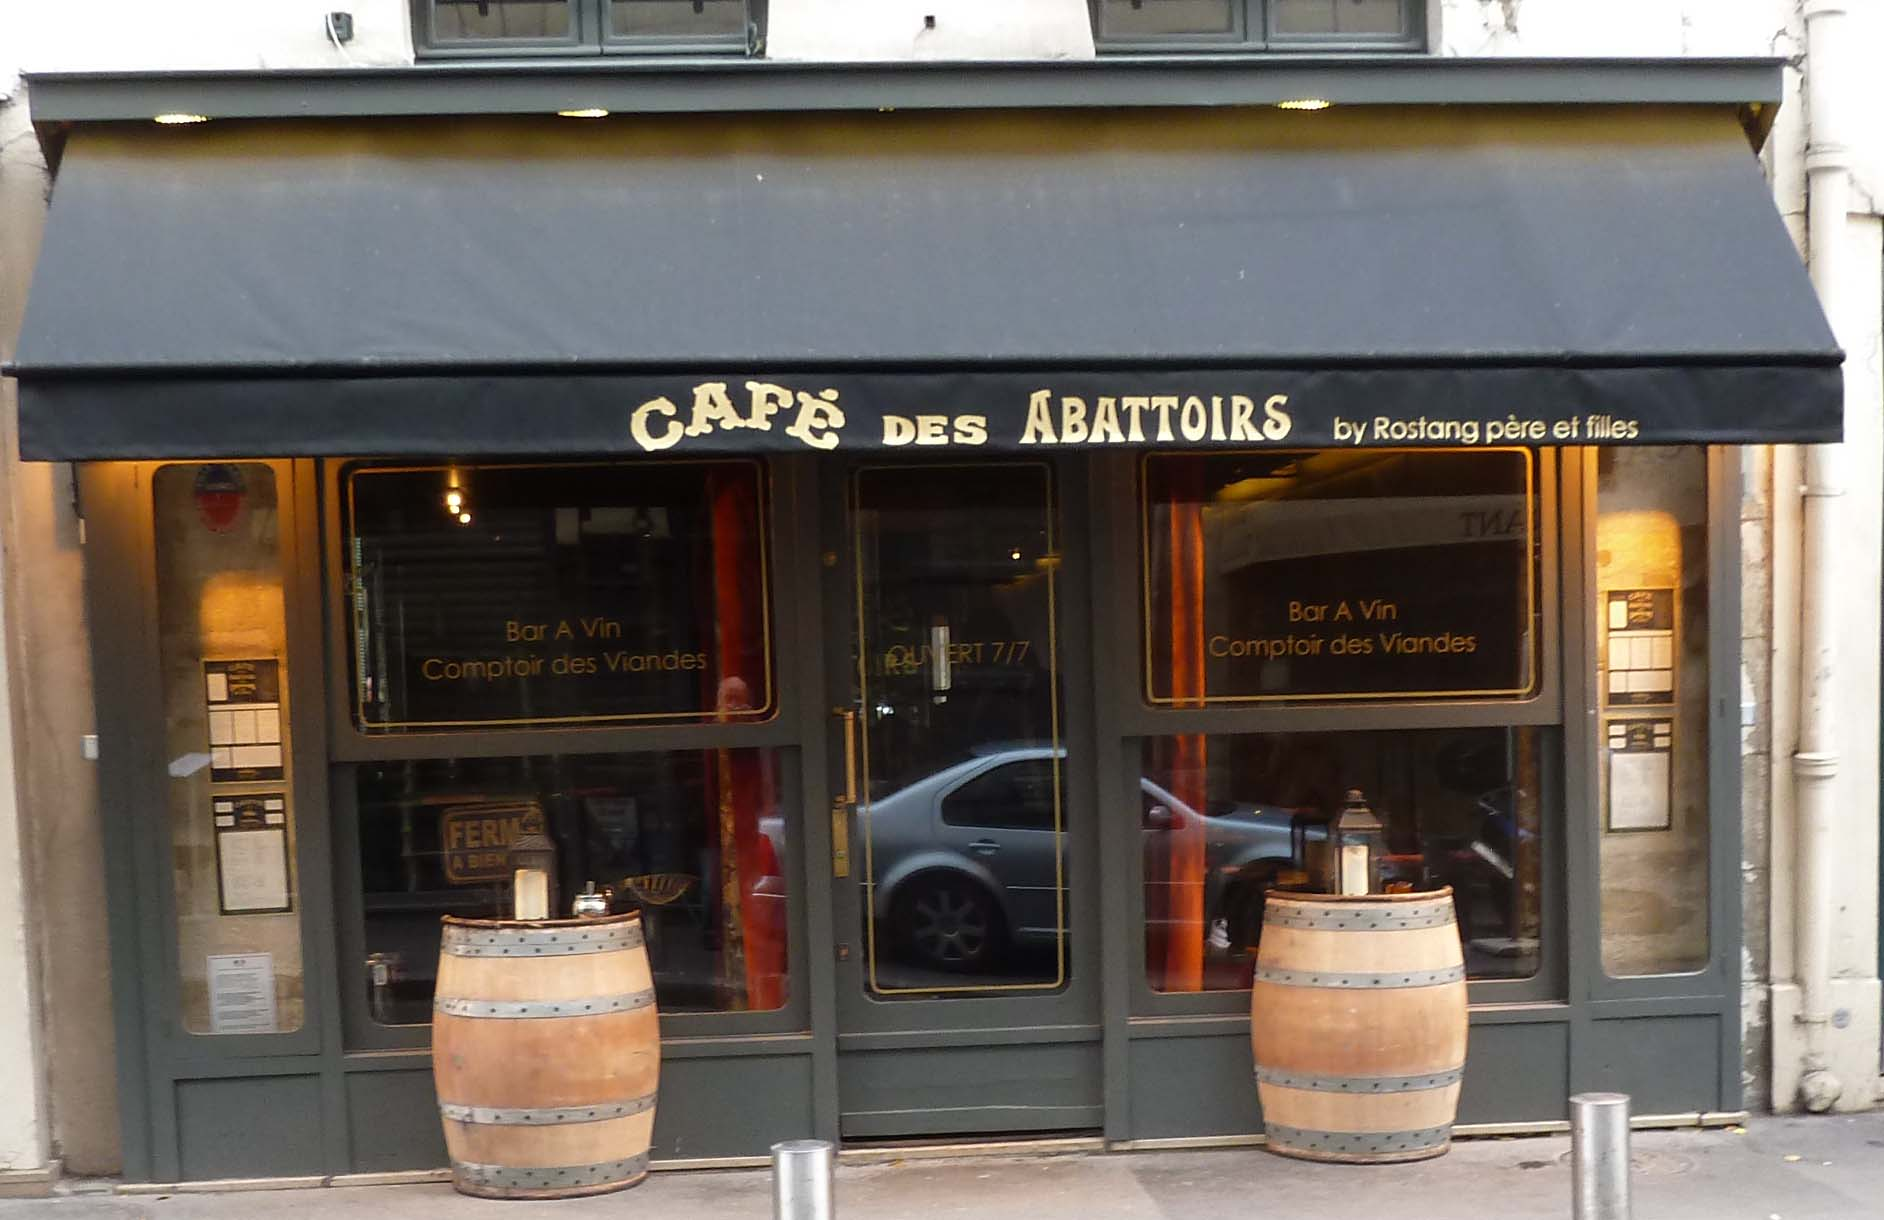 CAFÉ DES ABATTOIRS - Things to do in Paris